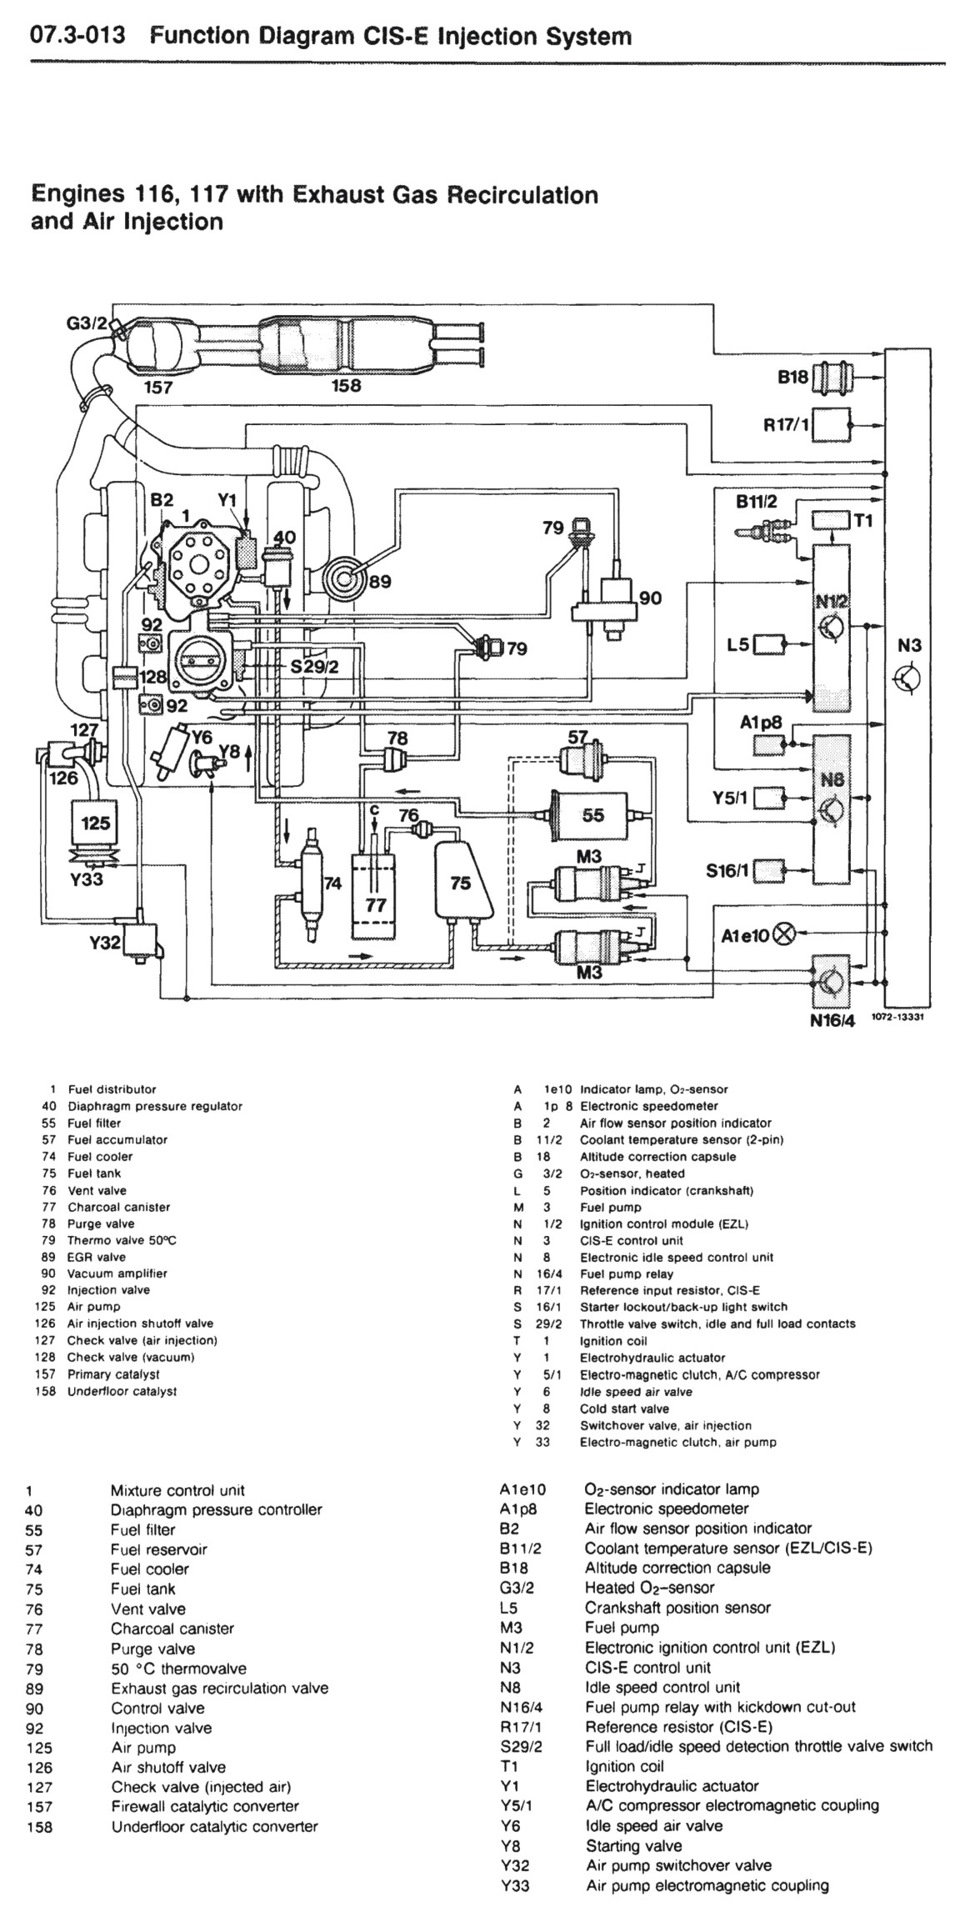 2000 jaguar xj8 engine fuse box diagram  u2013 car 1988 jaguar